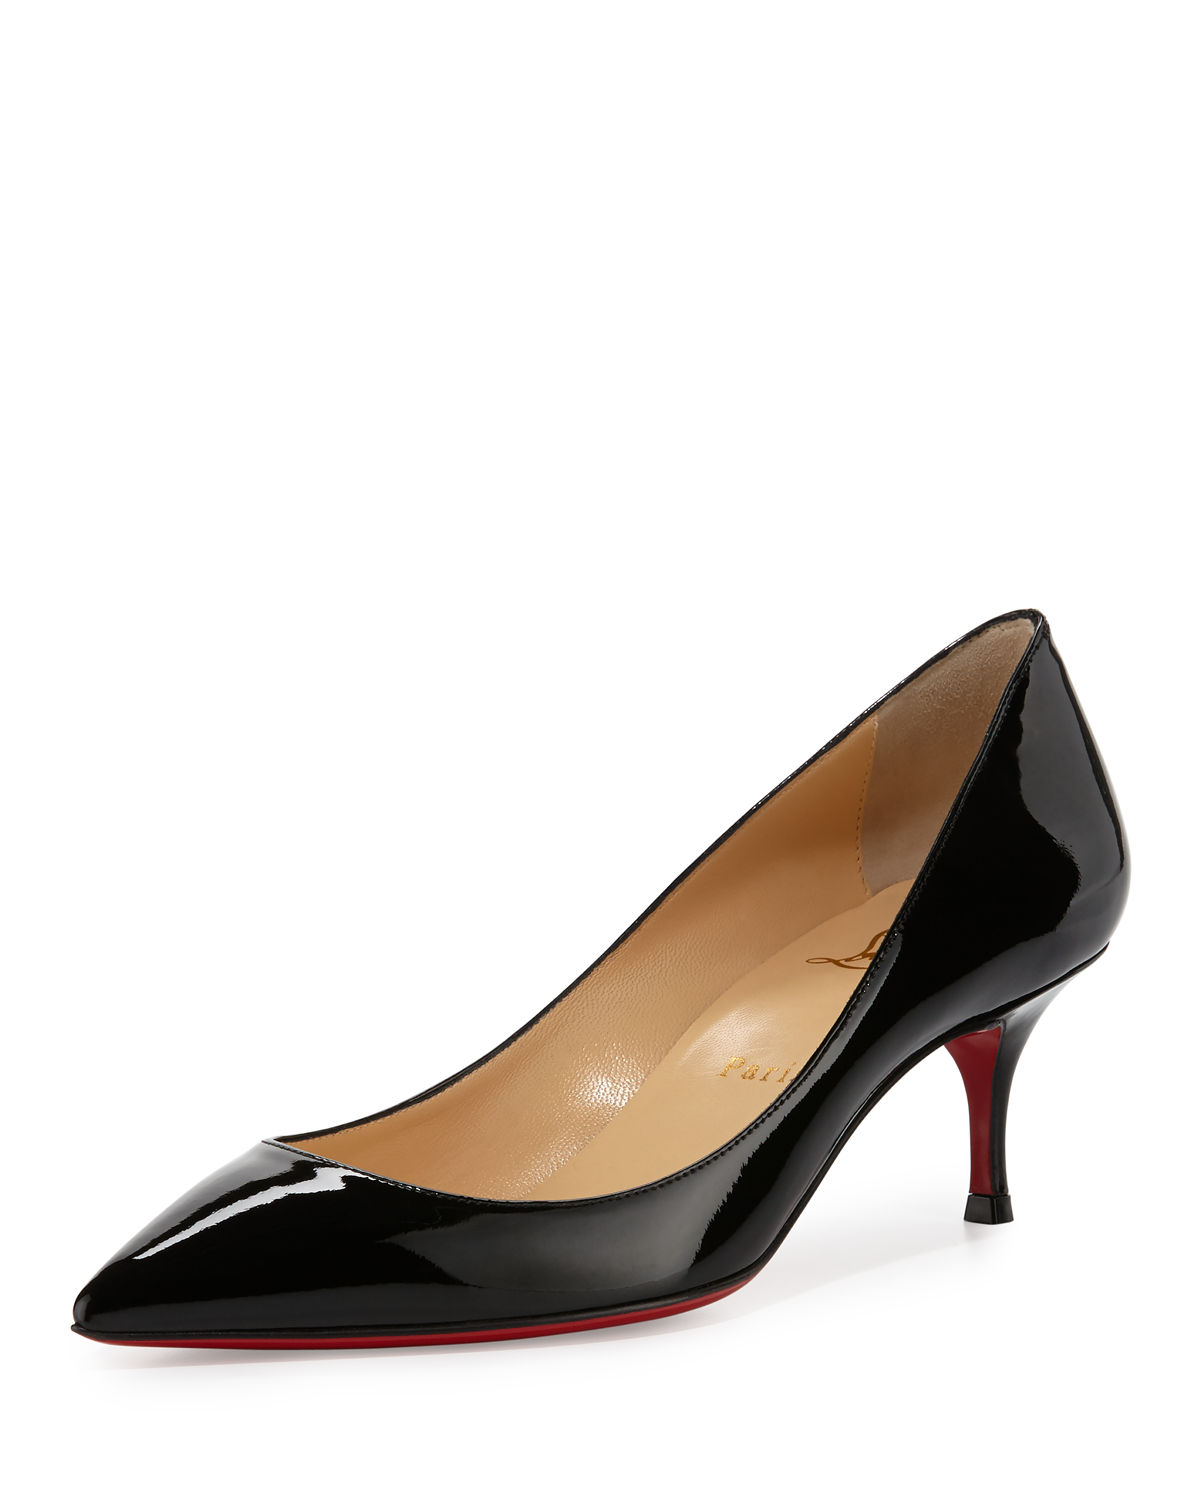 691b791a8e4 Christian Louboutin Pigalle Follies Degrade Patent Red Sole Pump ...